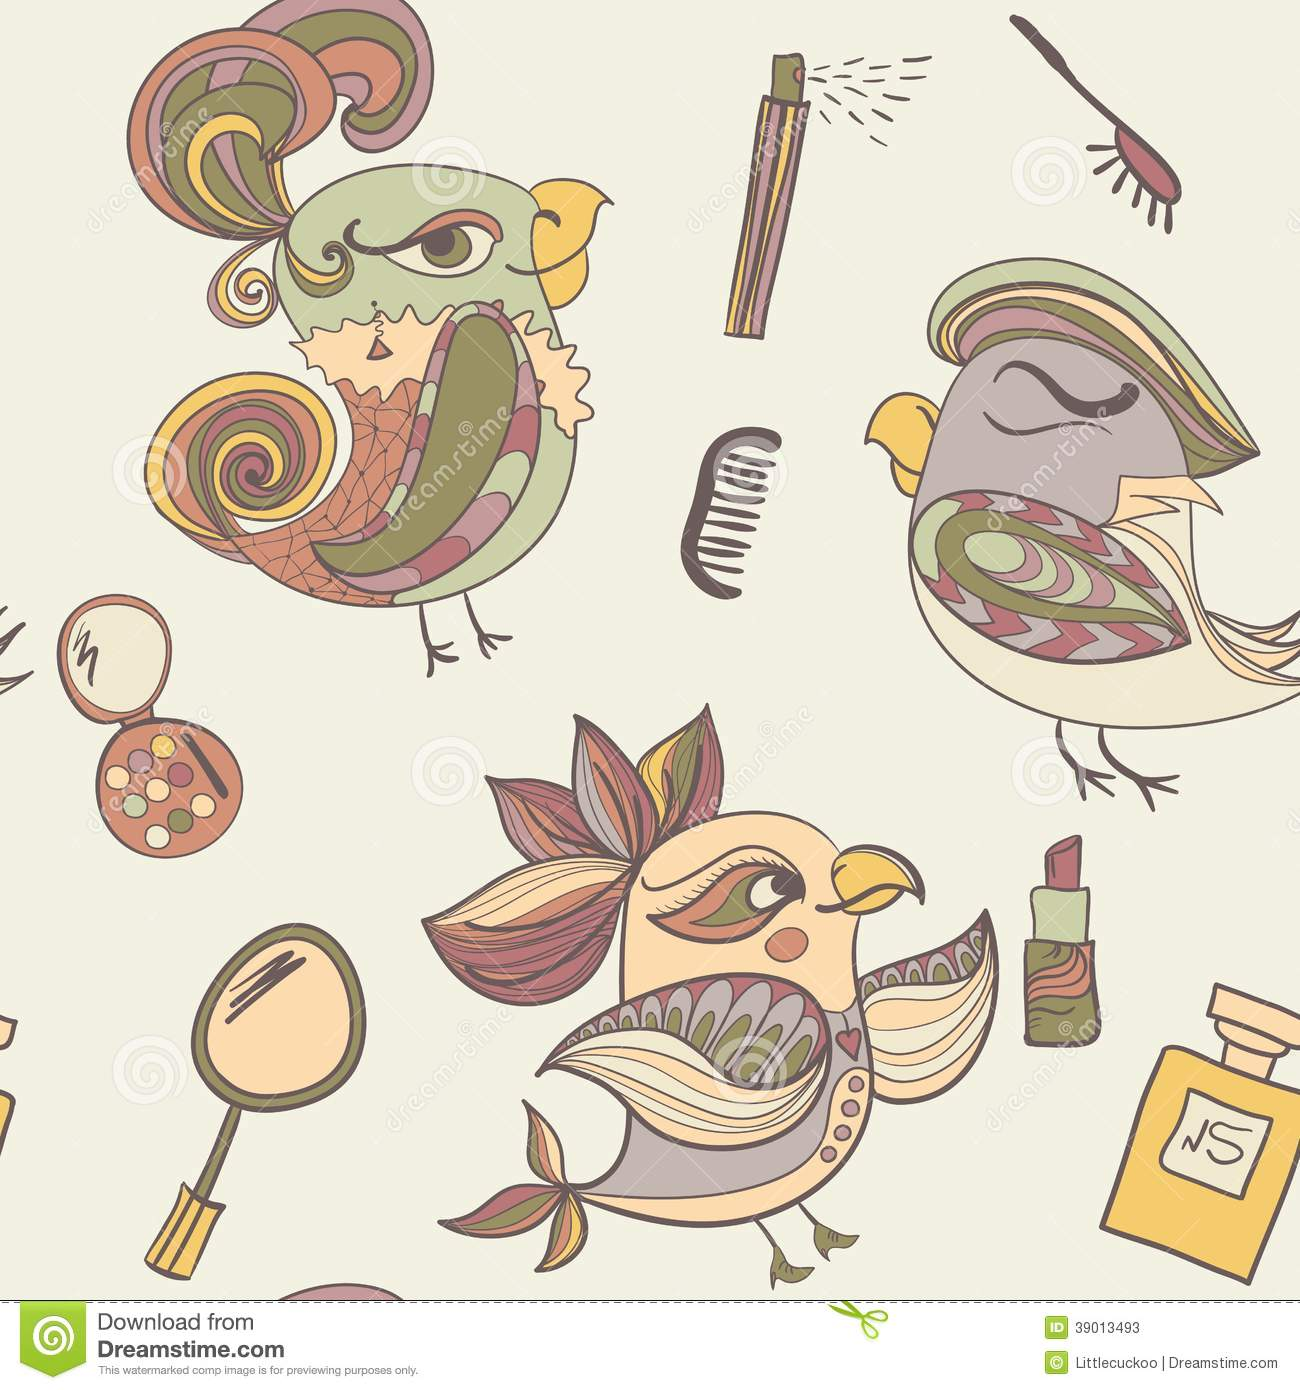 Fantastic Cartoon Makeup Wallpaper - makeup-cosmetics-fashion-beautiful-bird-pale-pastel-color-endless-pattern-can-be-used-wallpaper-pattern-backdrop-surface-39013493  Trends_654662.jpg